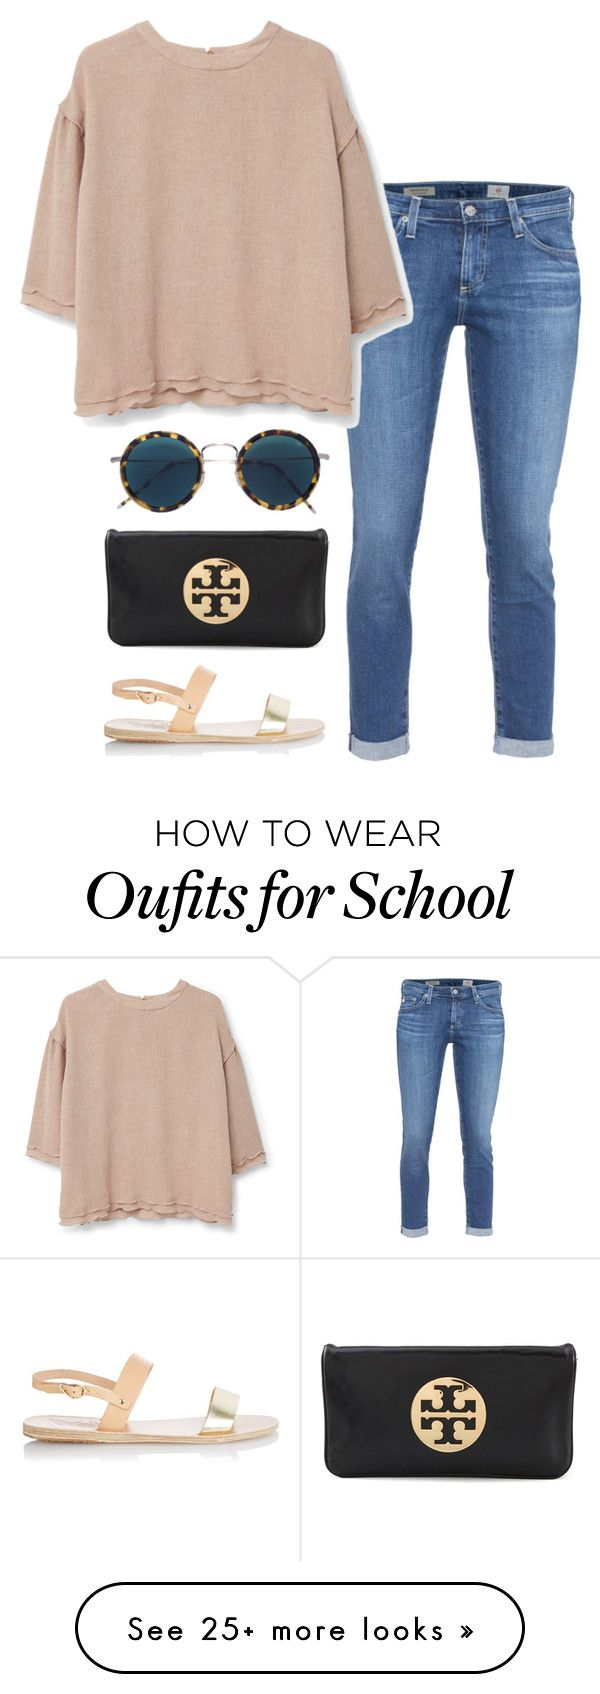 """no school tomorrow :-)"" by helenhudson1 on Polyvore featuring AG Adriano Goldschmied, MANGO, Eyevan 7285, Tory Burch, Ancient Greek Sandals, women's clothing, women, female, woman and misses"